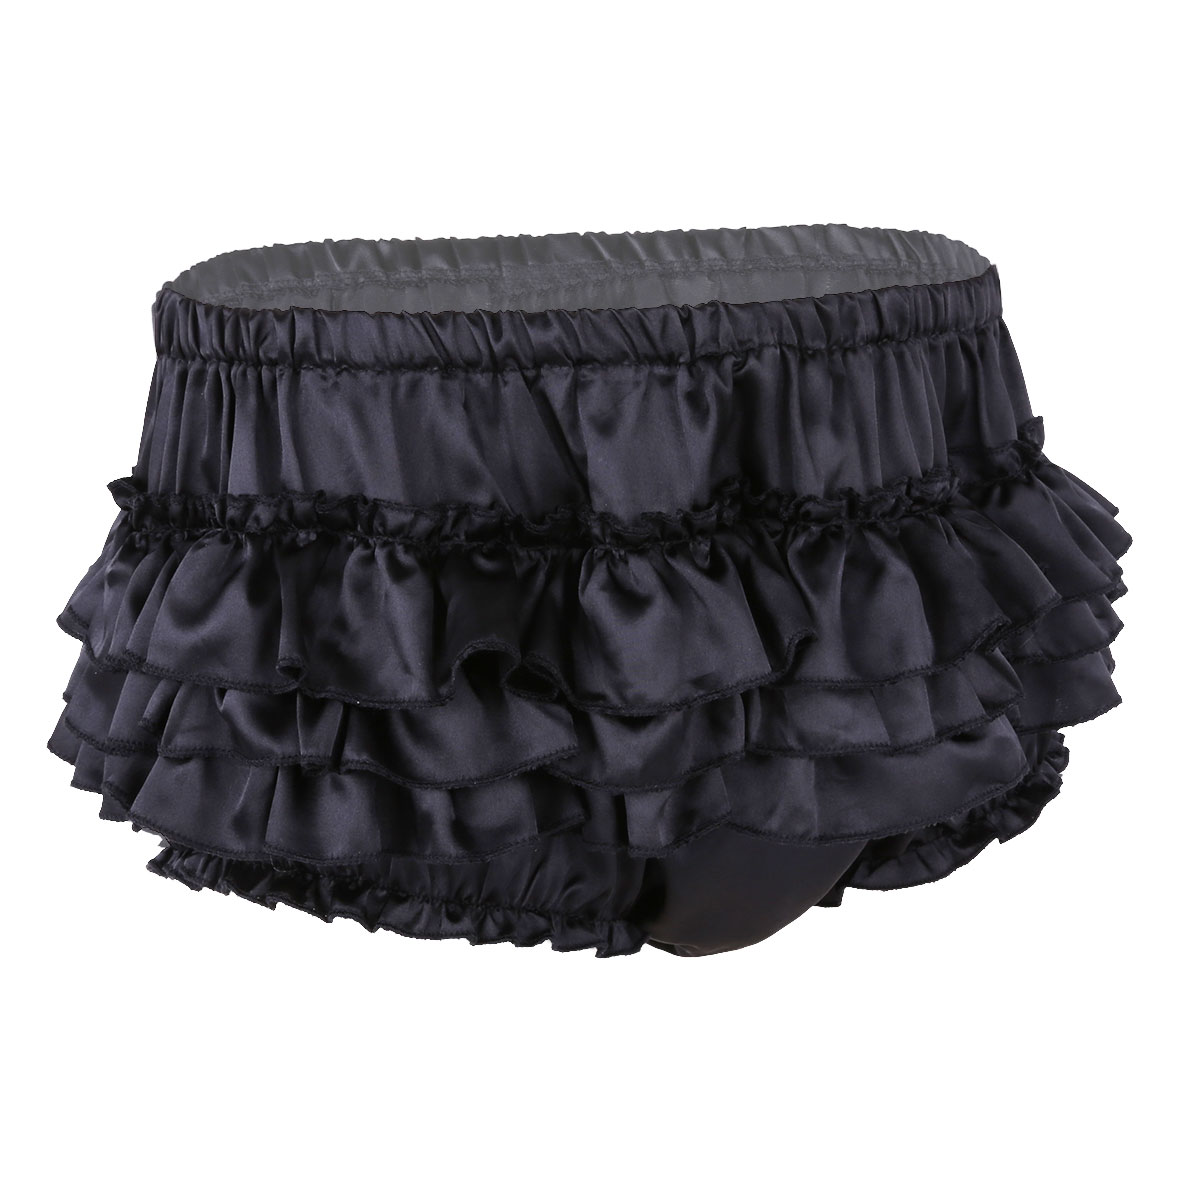 iEFiEL <font><b>Mens</b></font> Lingerie <font><b>Gay</b></font> Panties <font><b>Shiny</b></font> Satin Ruffled Bloomer Tiered Skirted Panties Briefs for <font><b>Sexy</b></font> Bikini Male Sissy <font><b>Underwear</b></font> image